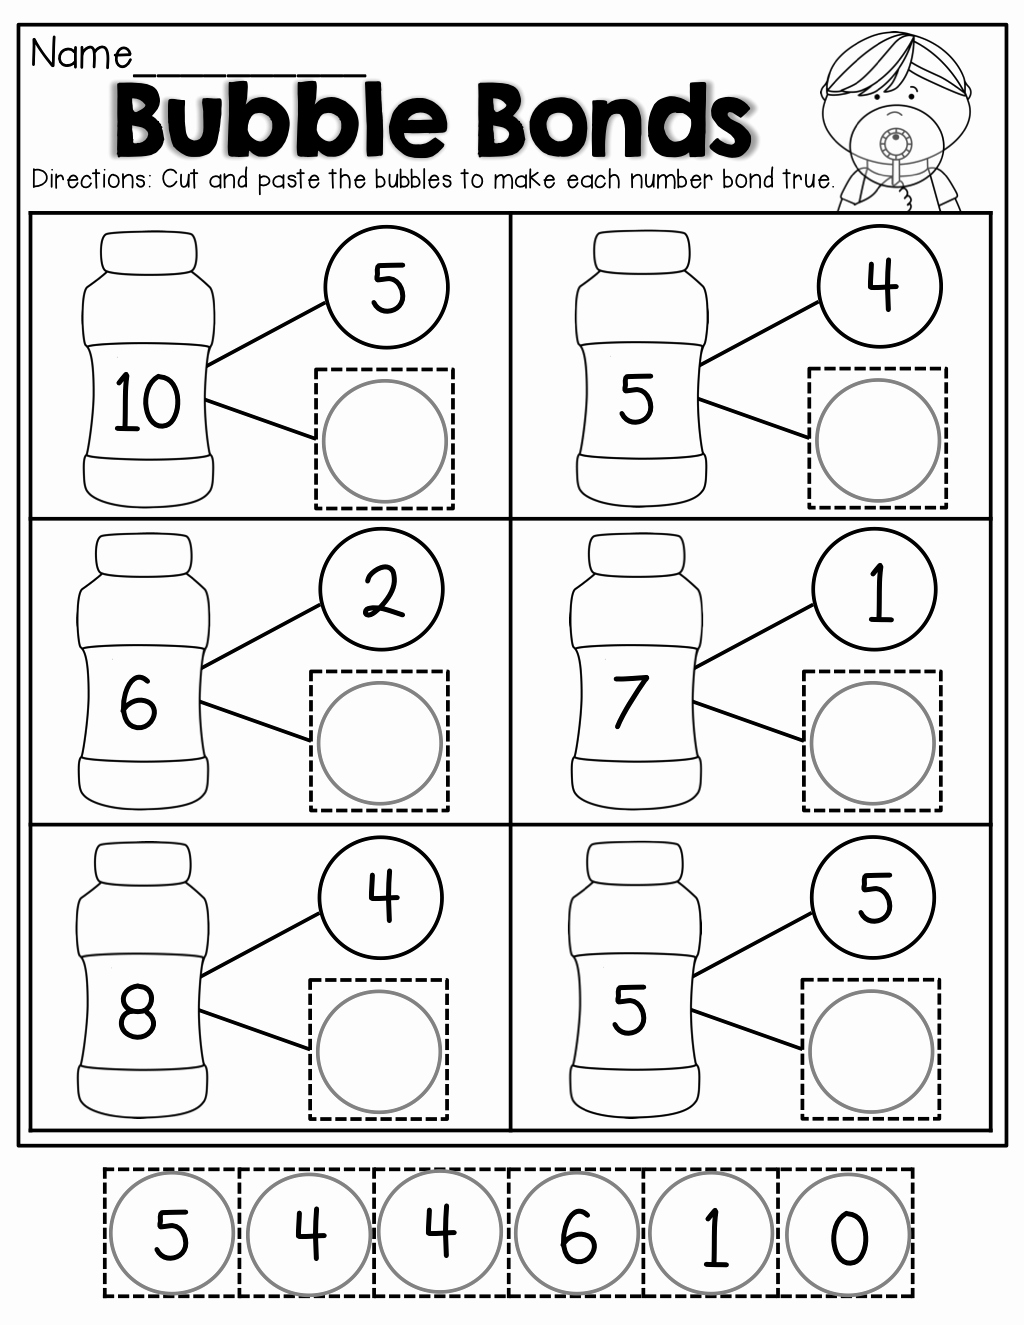 Number Bonds to 10 Worksheet New Number Bubble Bonds Cut and Paste